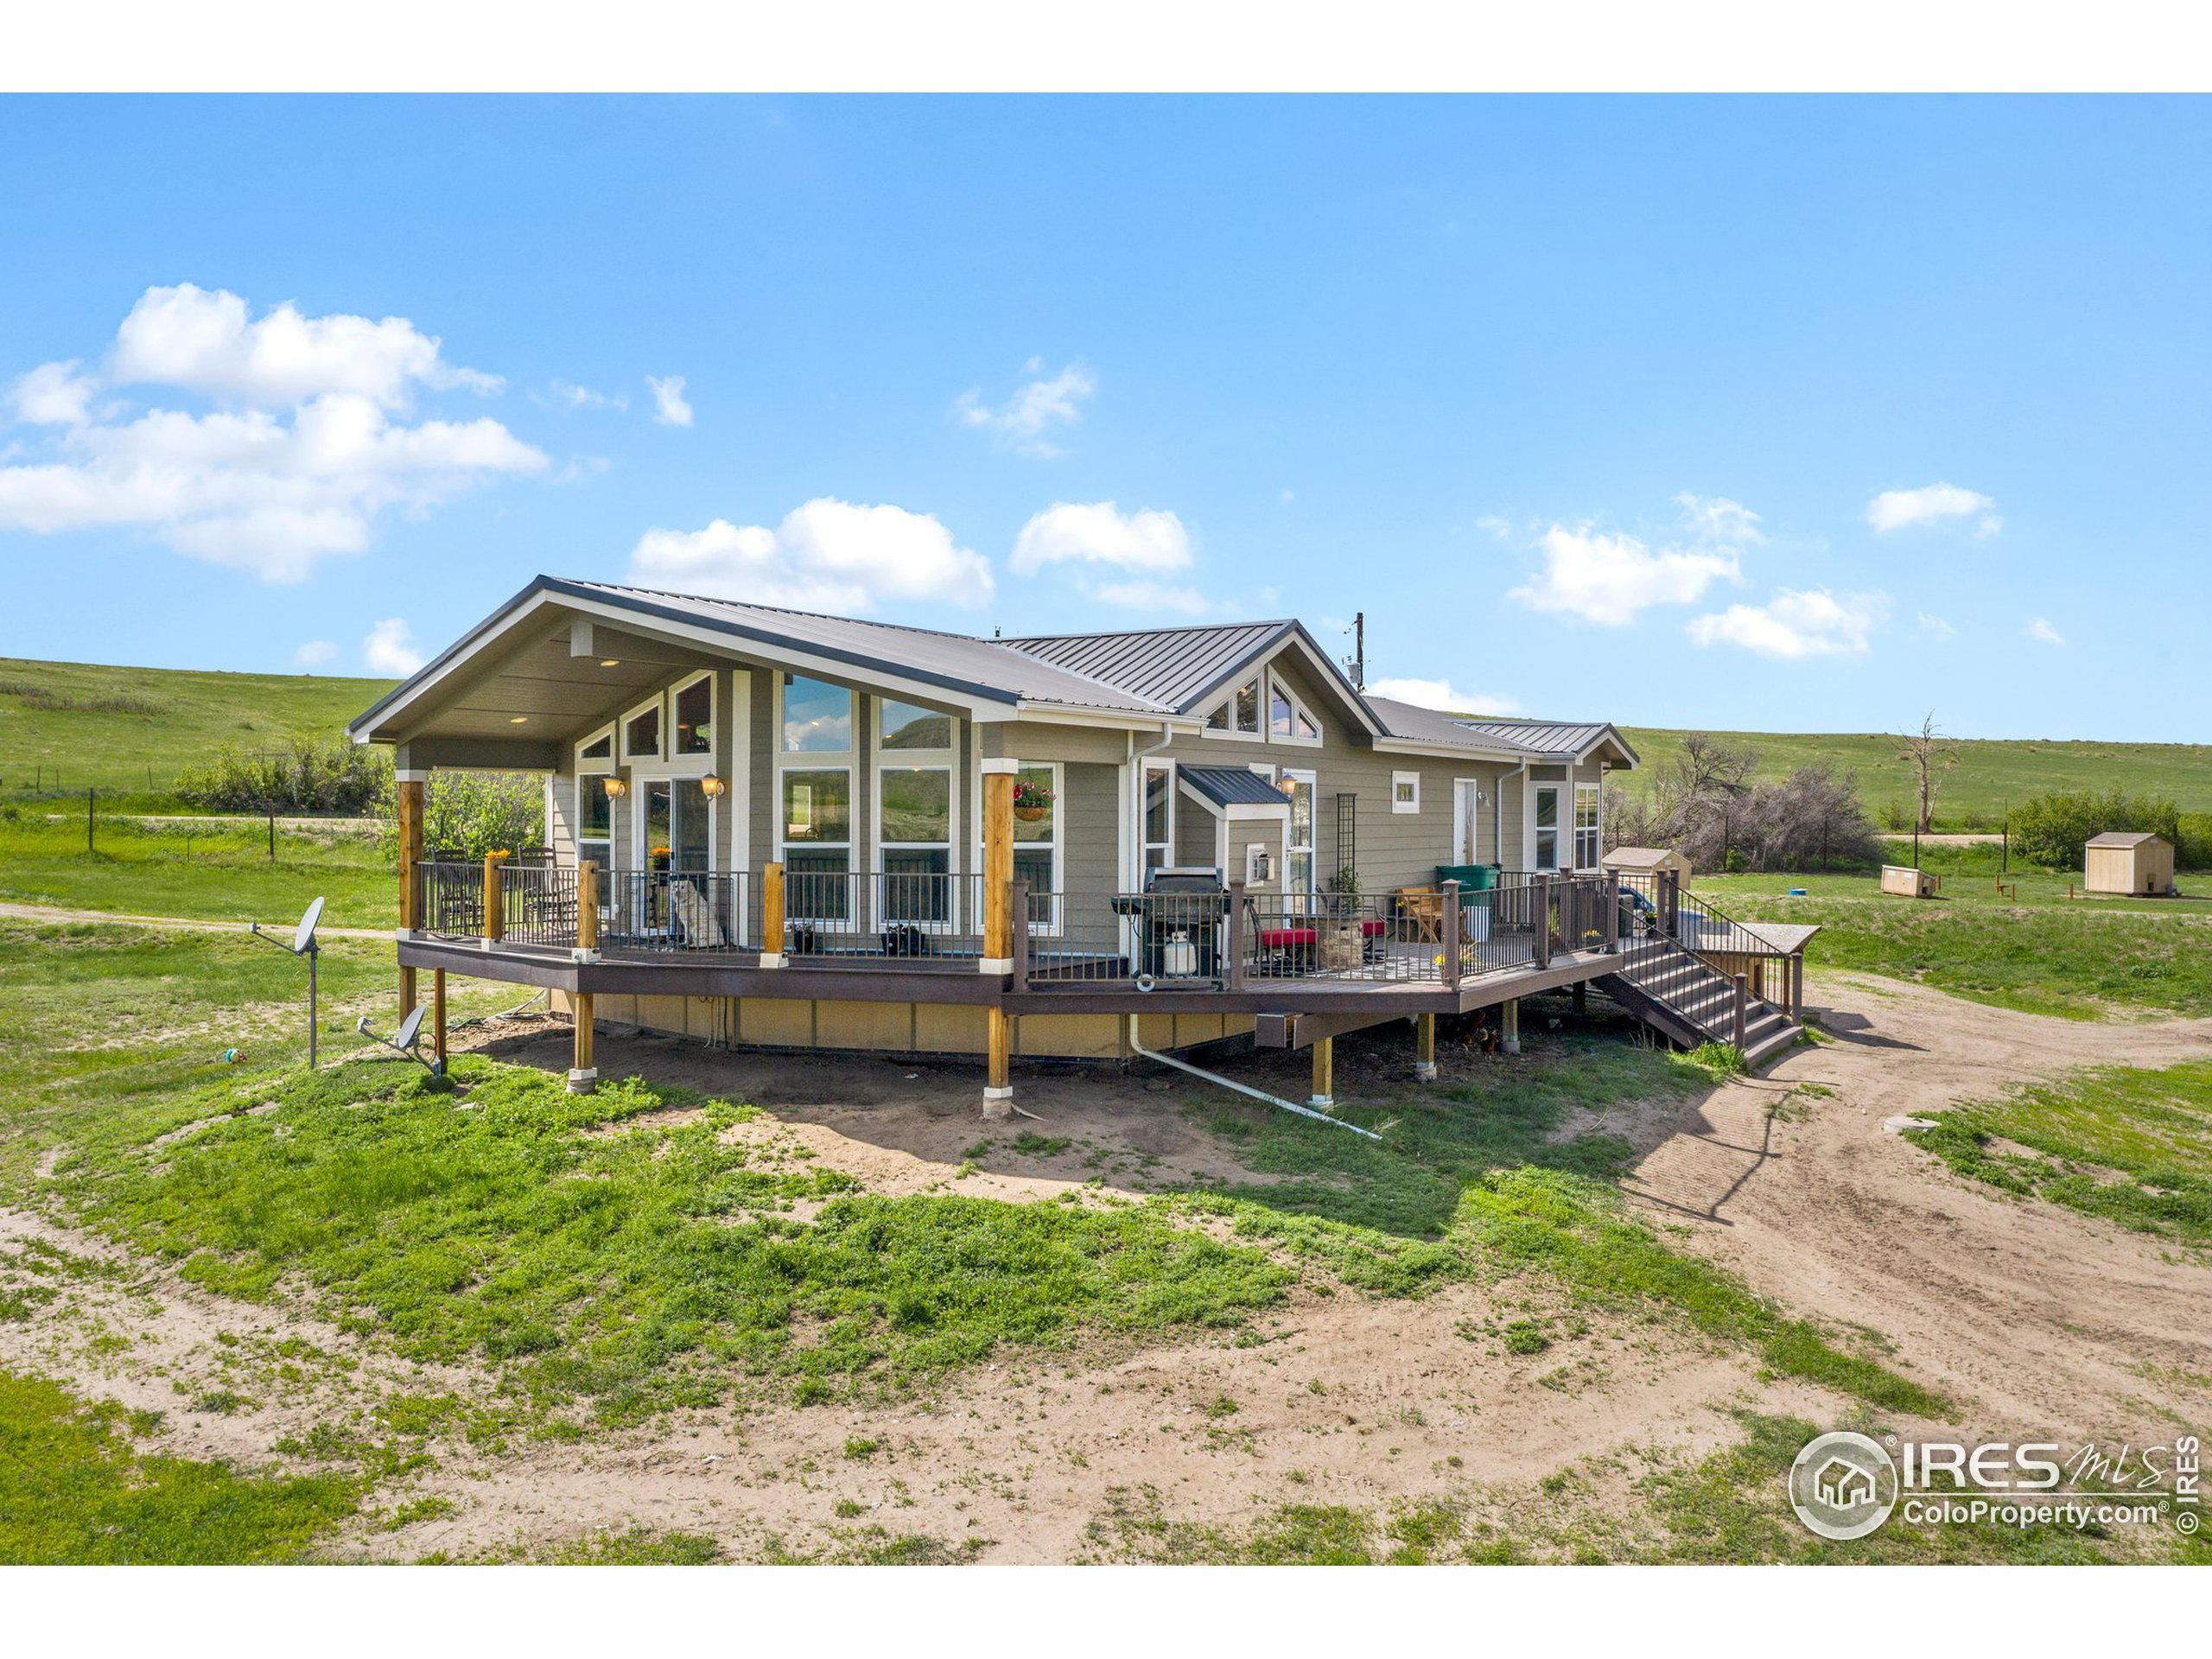 2014 Modular home ~1,797 sq. ft ~ built on a Fox Block Foundation includes a full unfinished basement